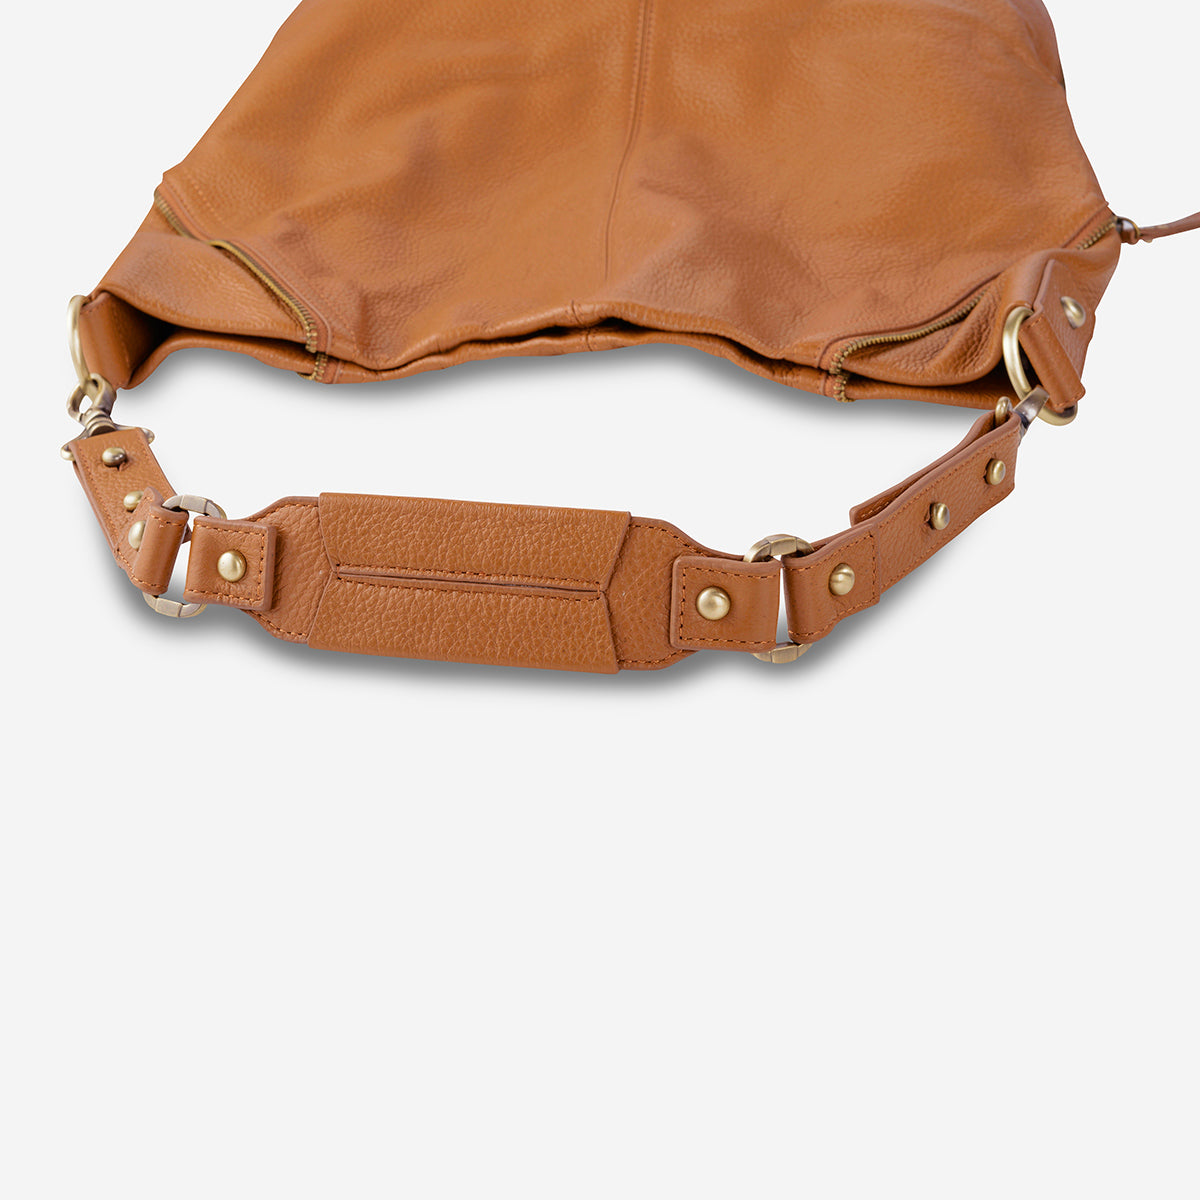 Status Anxiety The Lair Women's Leather Bag - Tan